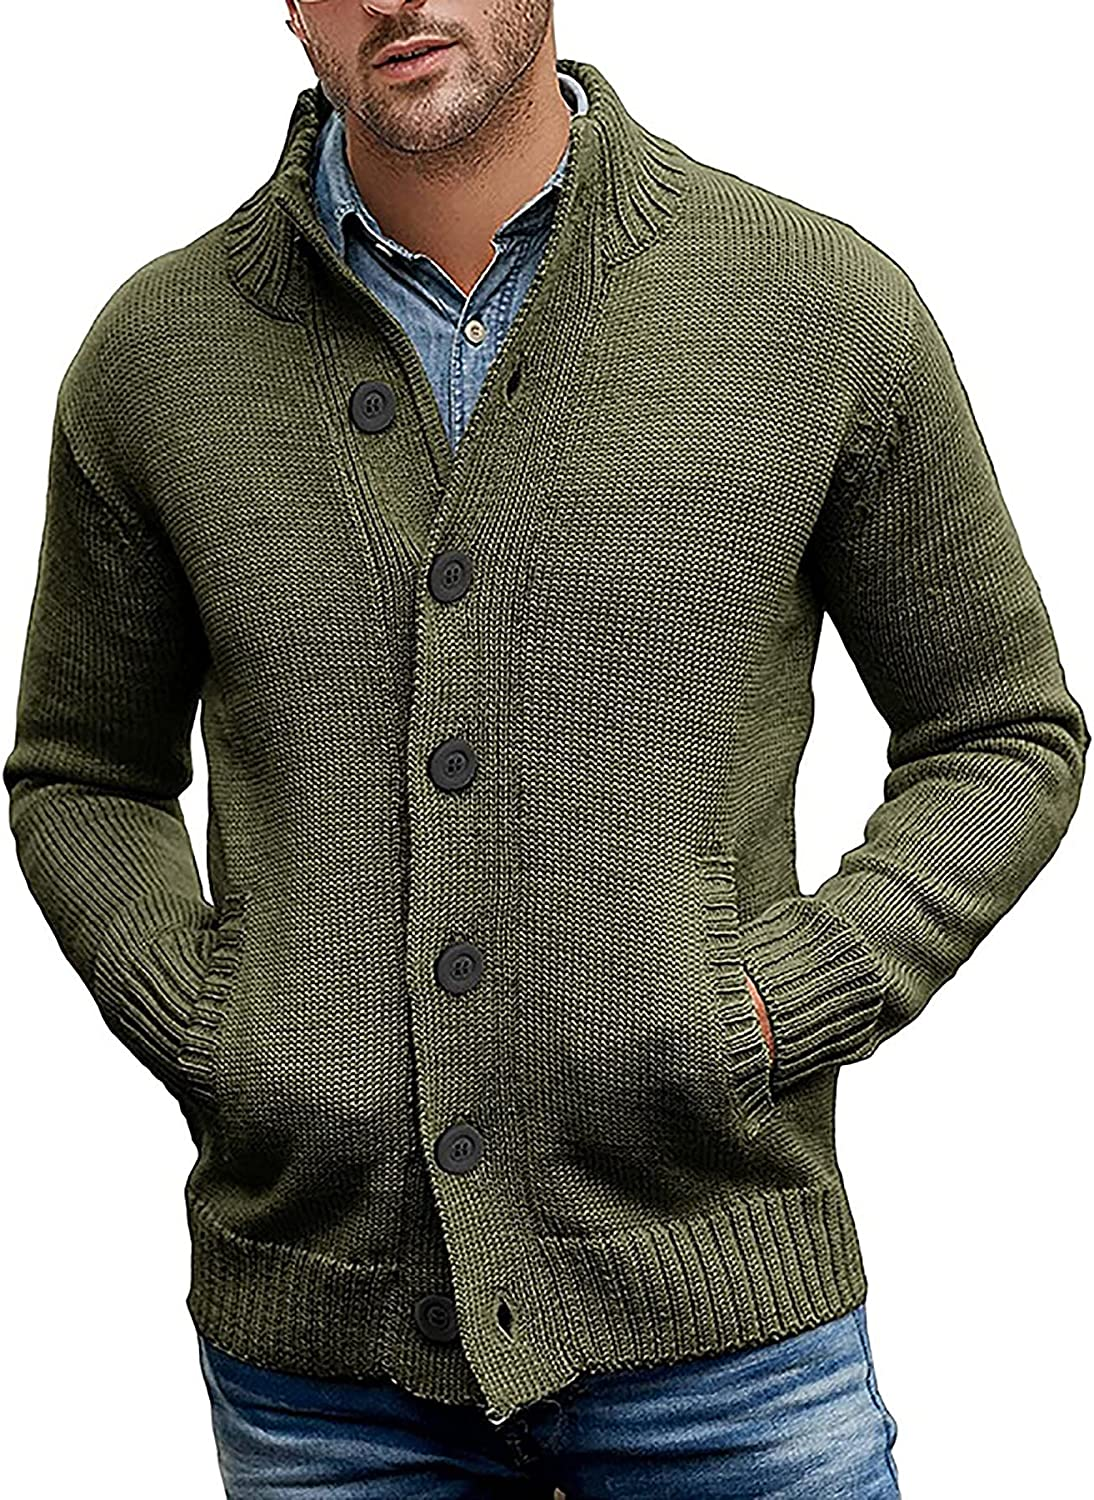 Mens High Collar Knit Cardigan Long Sleeve Slim Fit Button Open Front Knitwear with Pocket